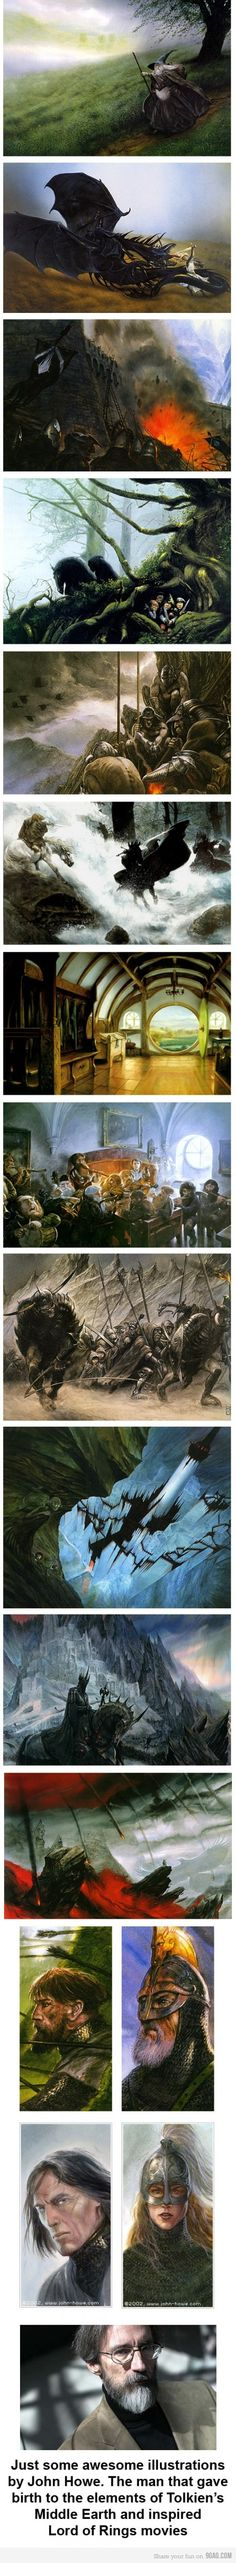 LOTR. Now now, he was not the only artist to inspire much of Peter Jackson's vision for the films. Alan Lee's paintings were used just as much if not more than John Howe's work. Personally I prefer Alan Lee, but both artists played a pivotal role in the making of these films.